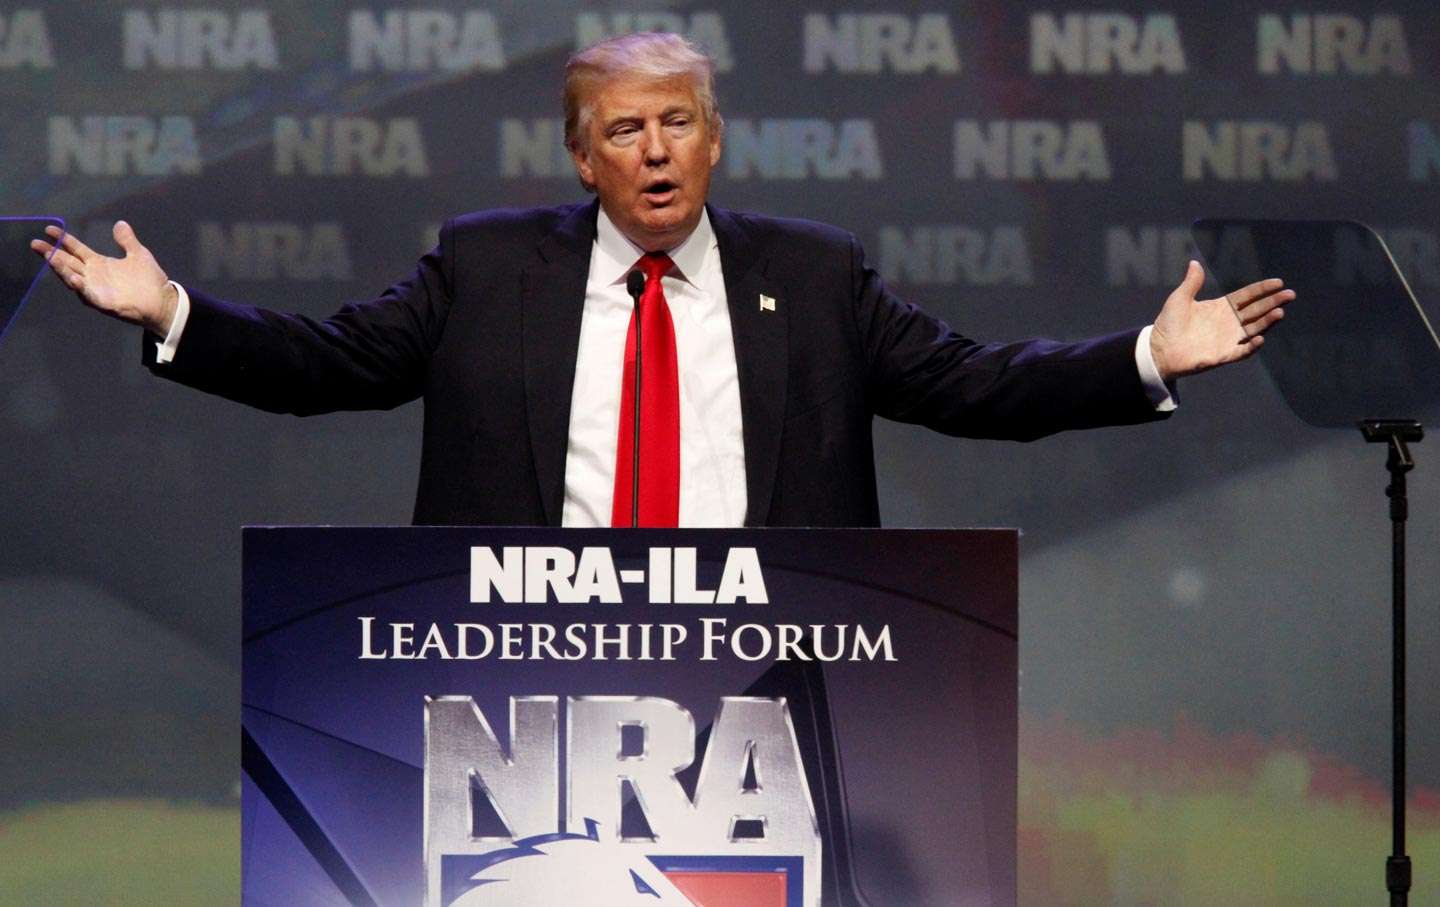 Donald Trump addresses NRA members